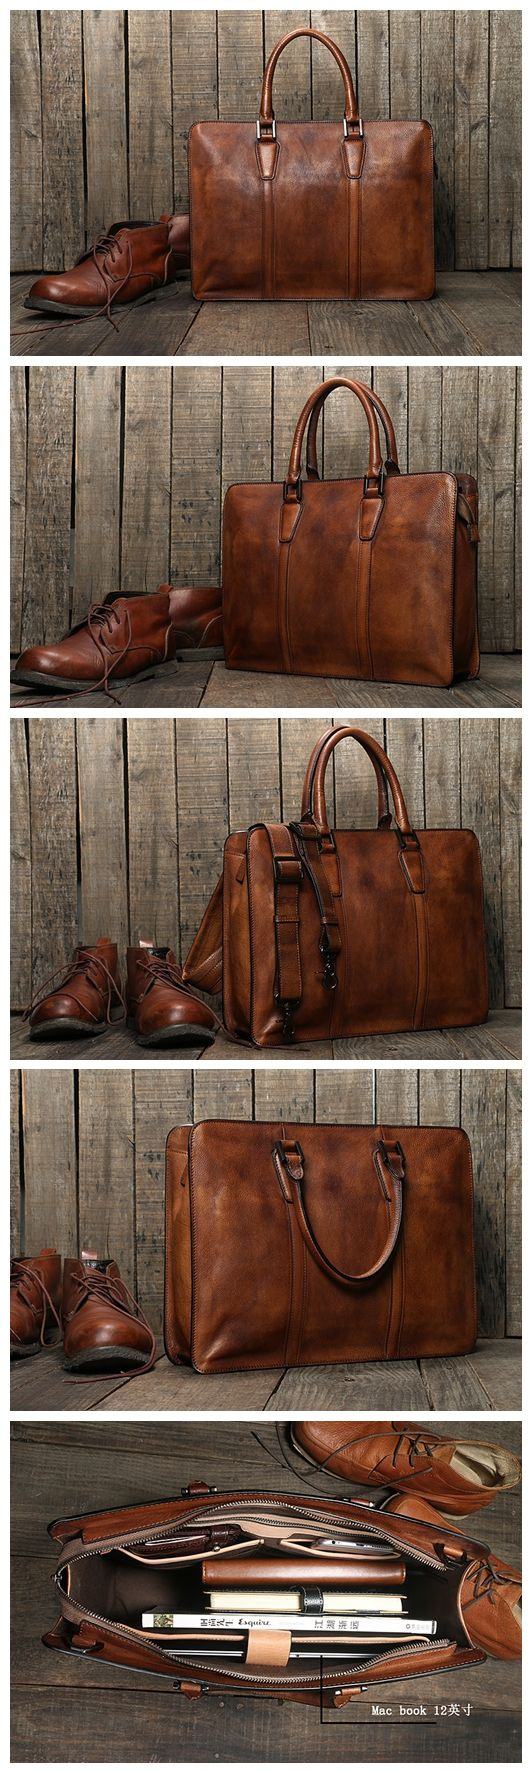 Handmade Vintage Genuine Leather Business Briefcase Men's Messenger Bag 14'' Laptop Bag Handbag NZ02 Overview: Design: Vintage Leather Men Briefcase In Stock: 4-5 days For Making Include: Only Leather